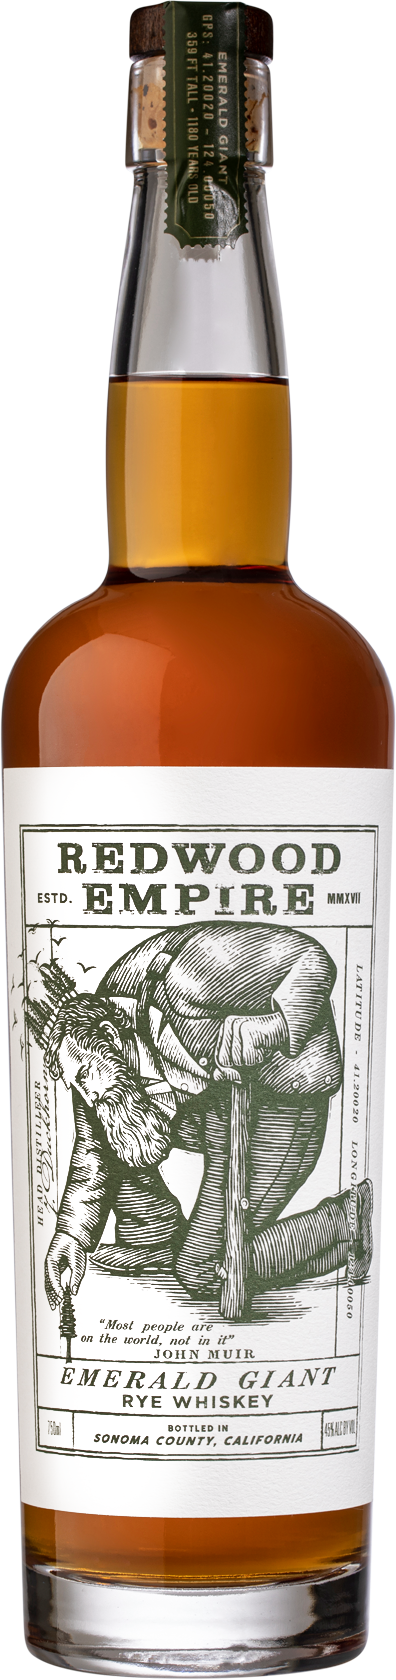 Redwood Empire - Emerald Giant - Rye Whiskey